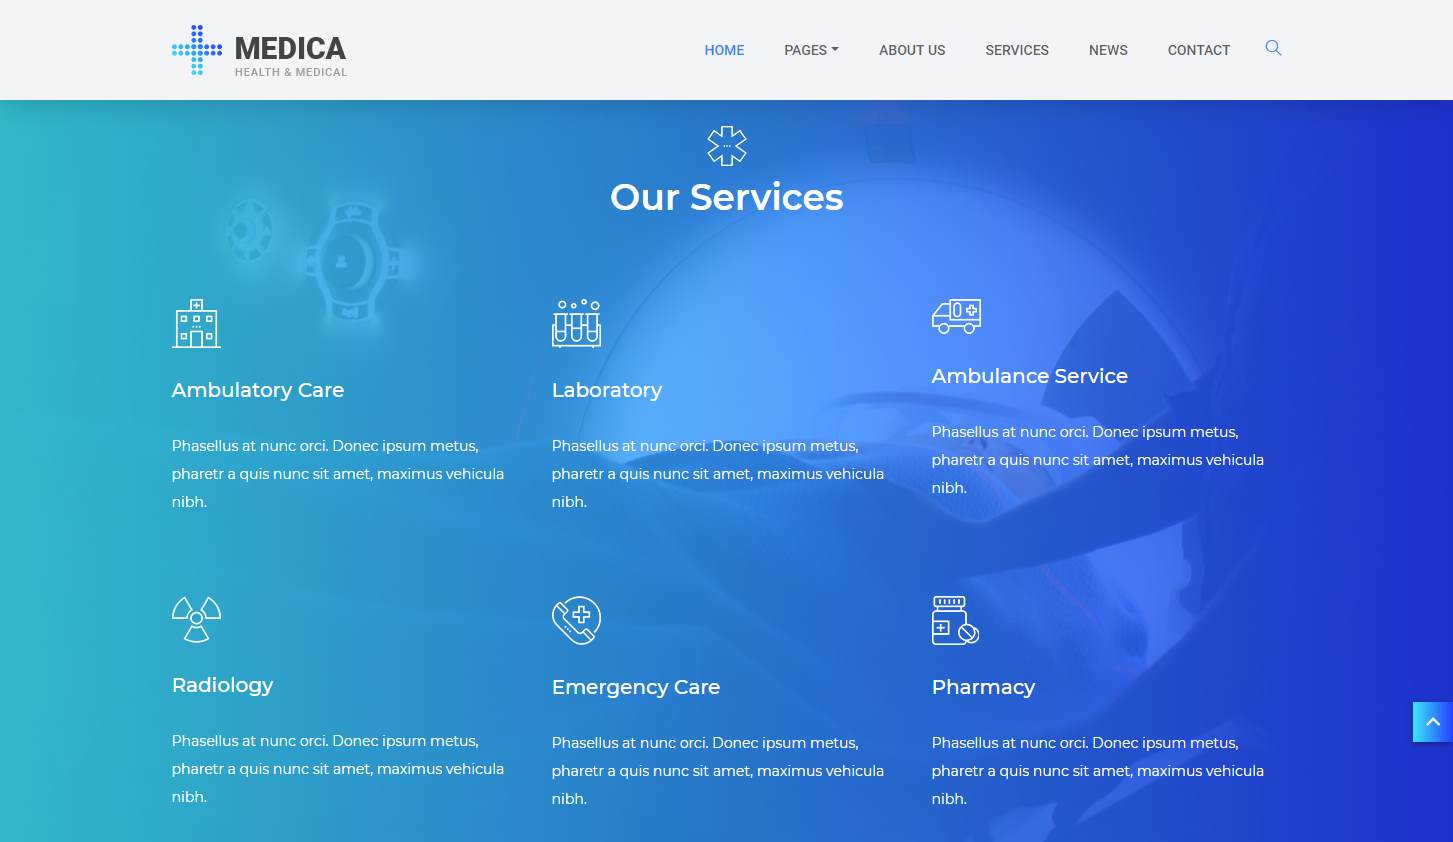 Medica: a Free Health and Medical Website Template